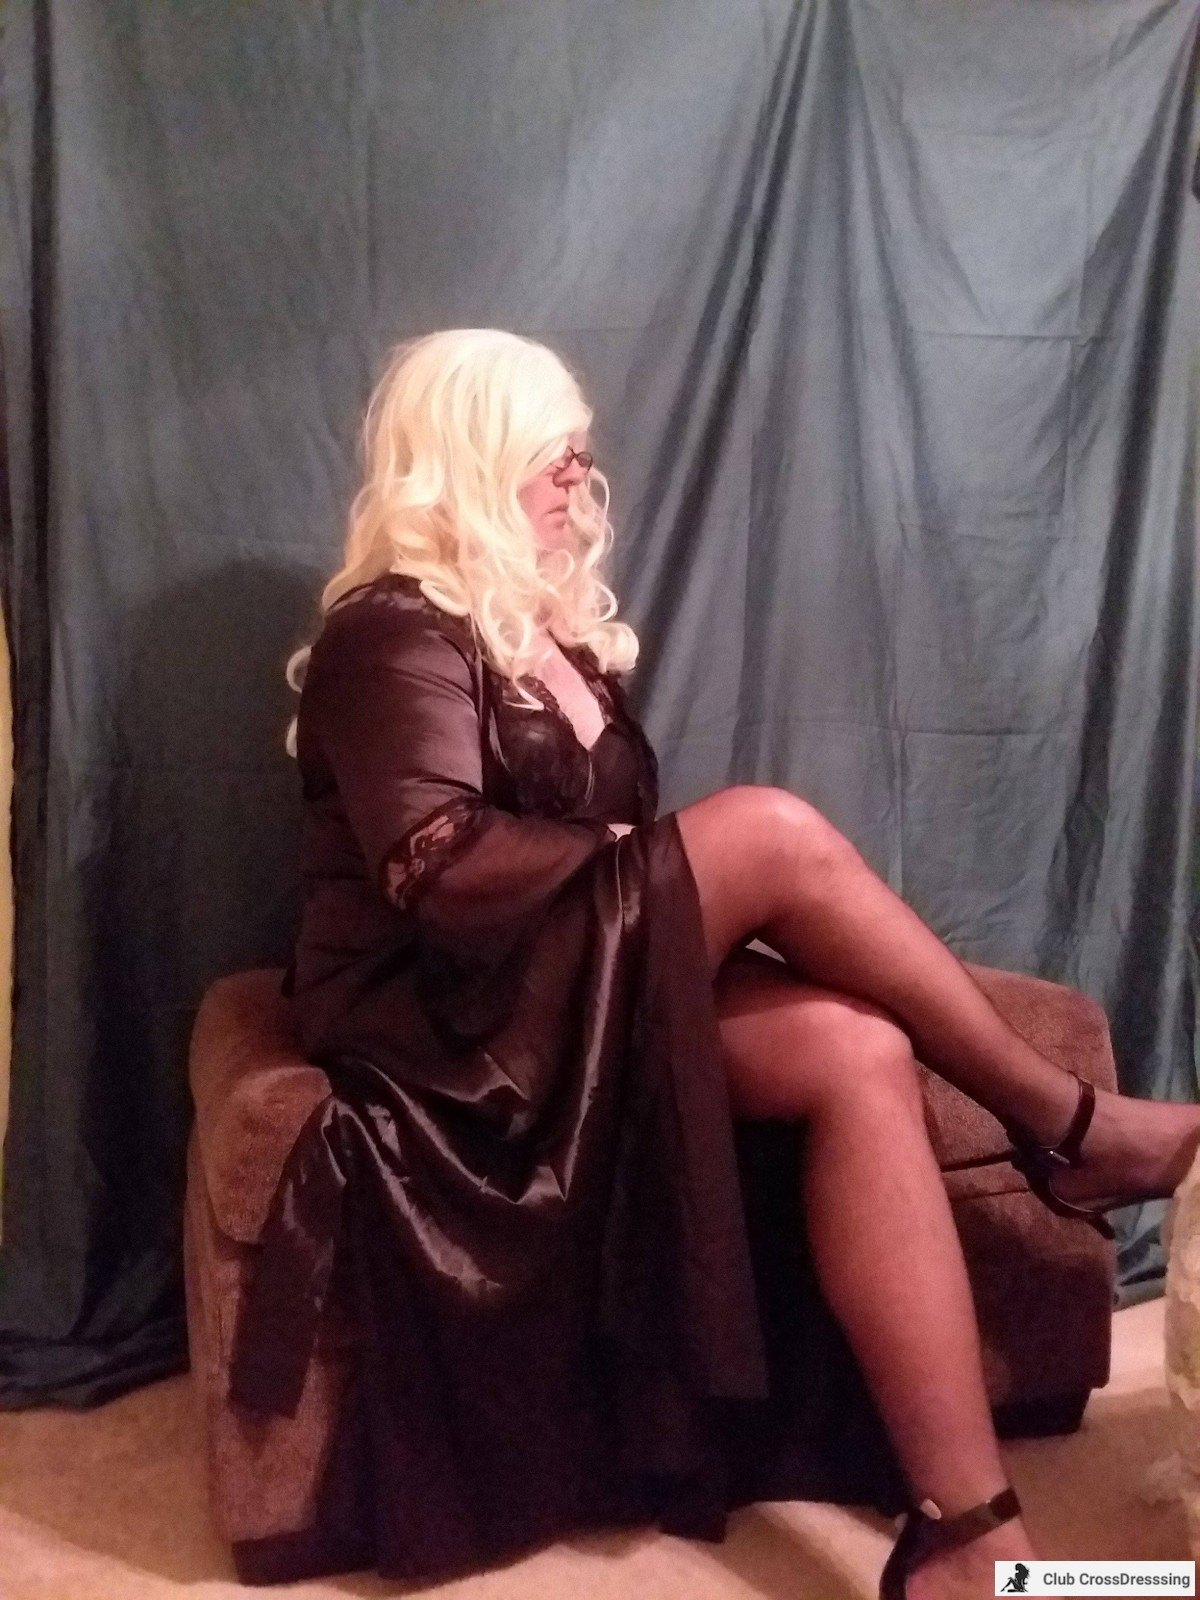 Crossdressers In Griffin Georgia Marc69 Likes Crossdressing Fashion Hair Care Stockings And Suspenders Stockings And High Heels Sexy Tops Tights Panyh